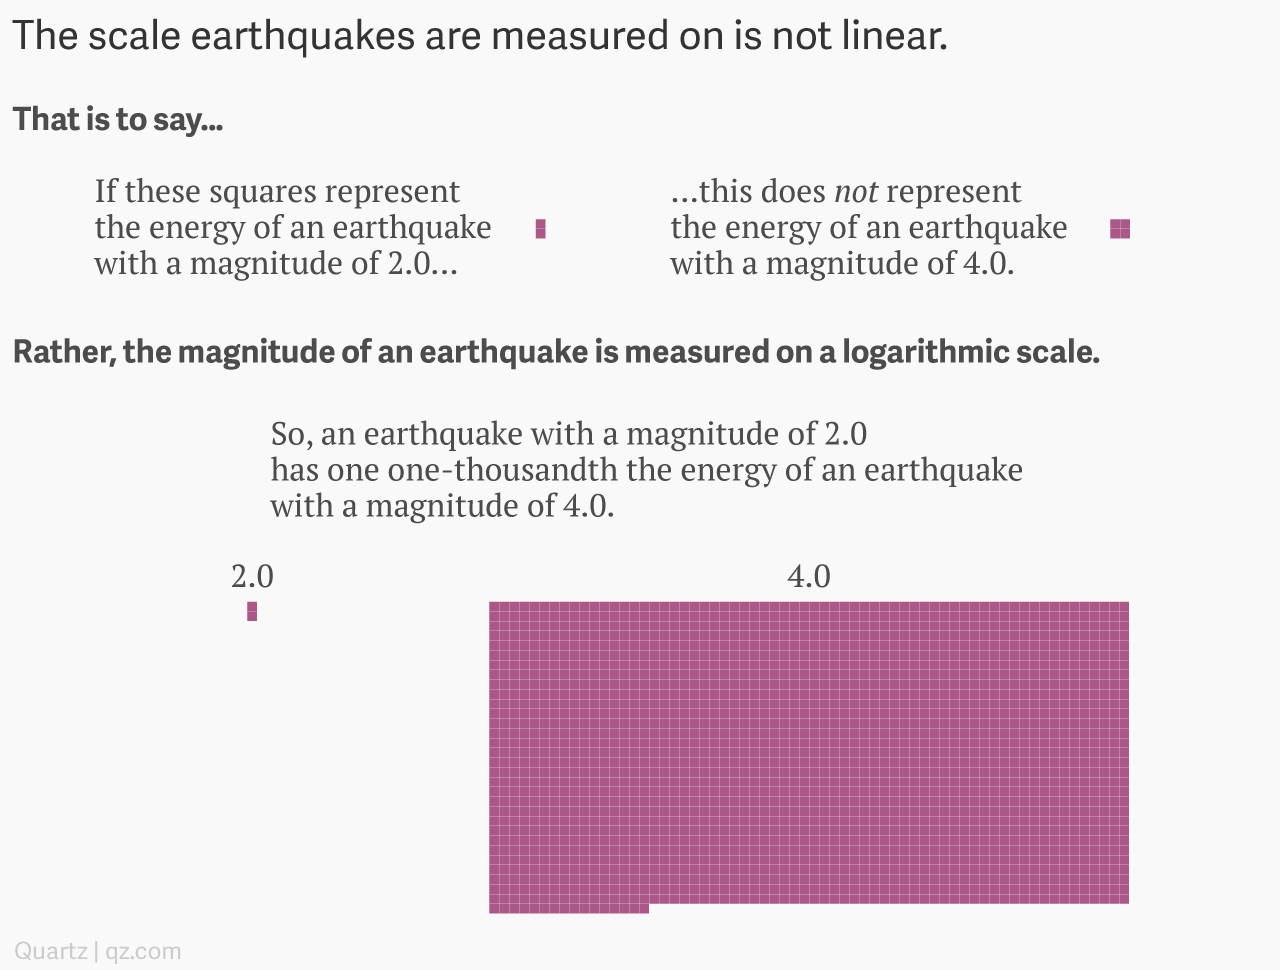 Is the scale earthquakes are measured on logarithmic? — Quartz